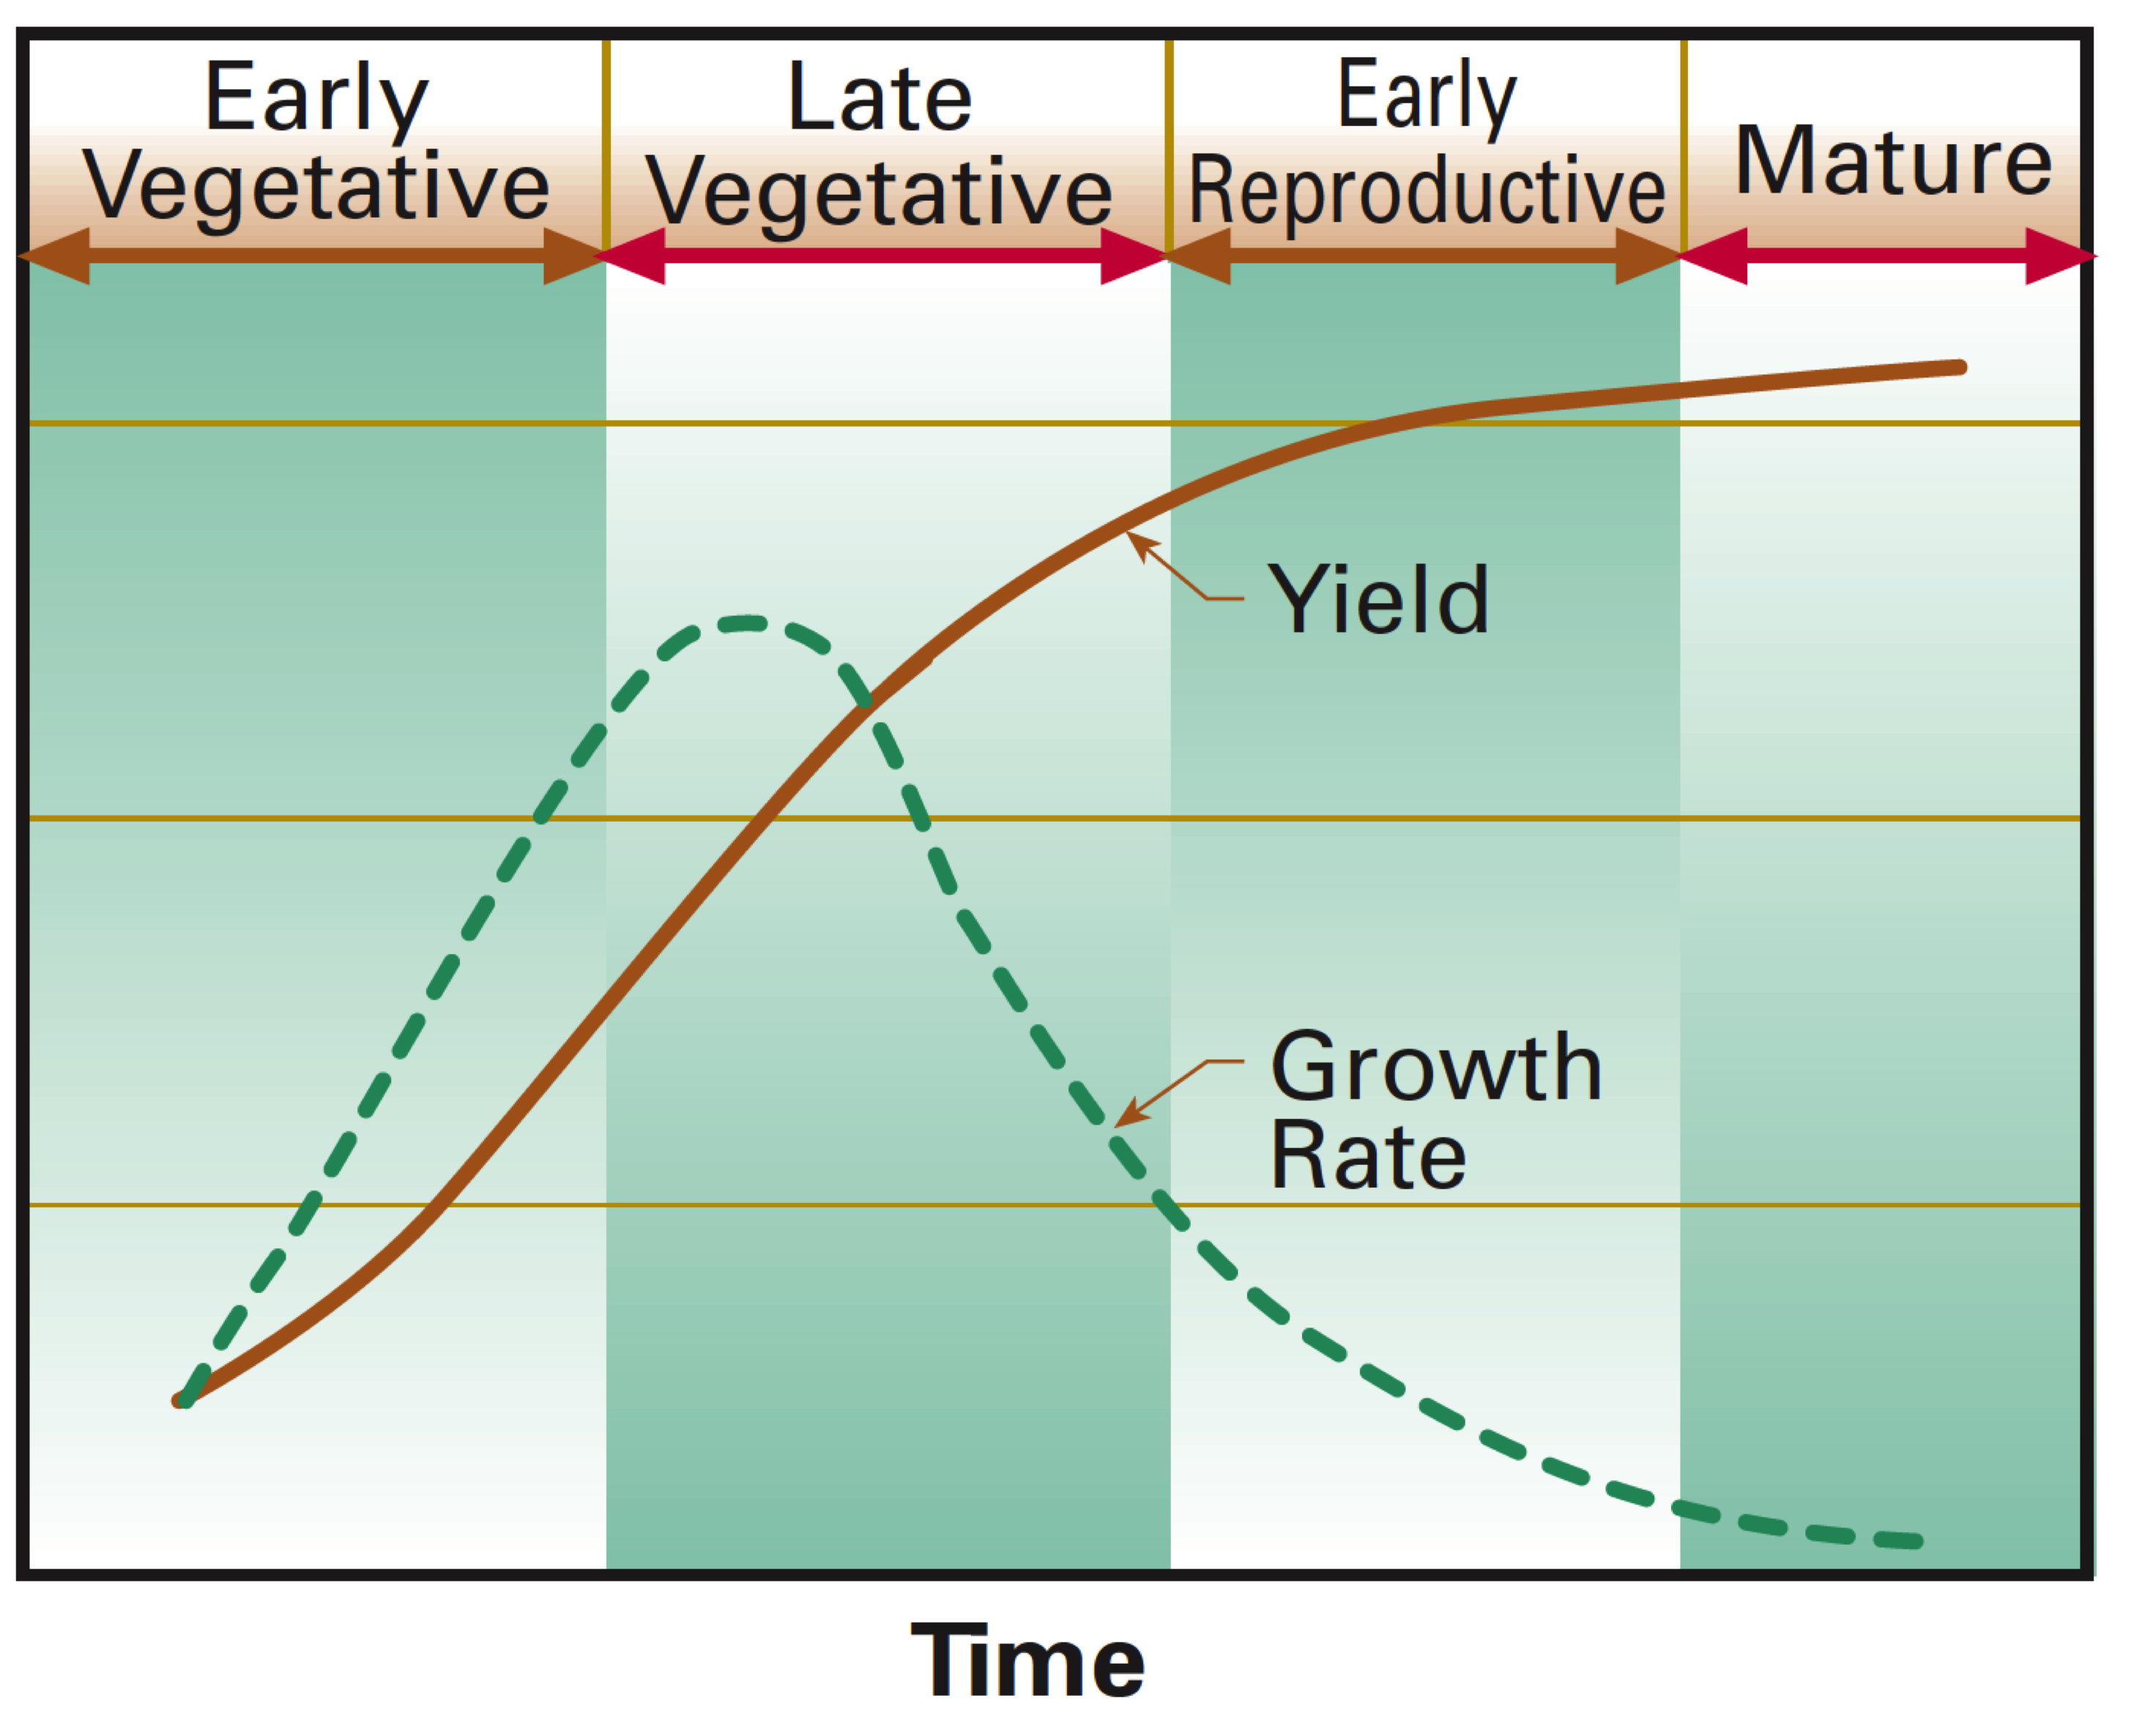 Figure 4. Growth rate changes during growth cycle. USDA Natural Resources Conservation Service